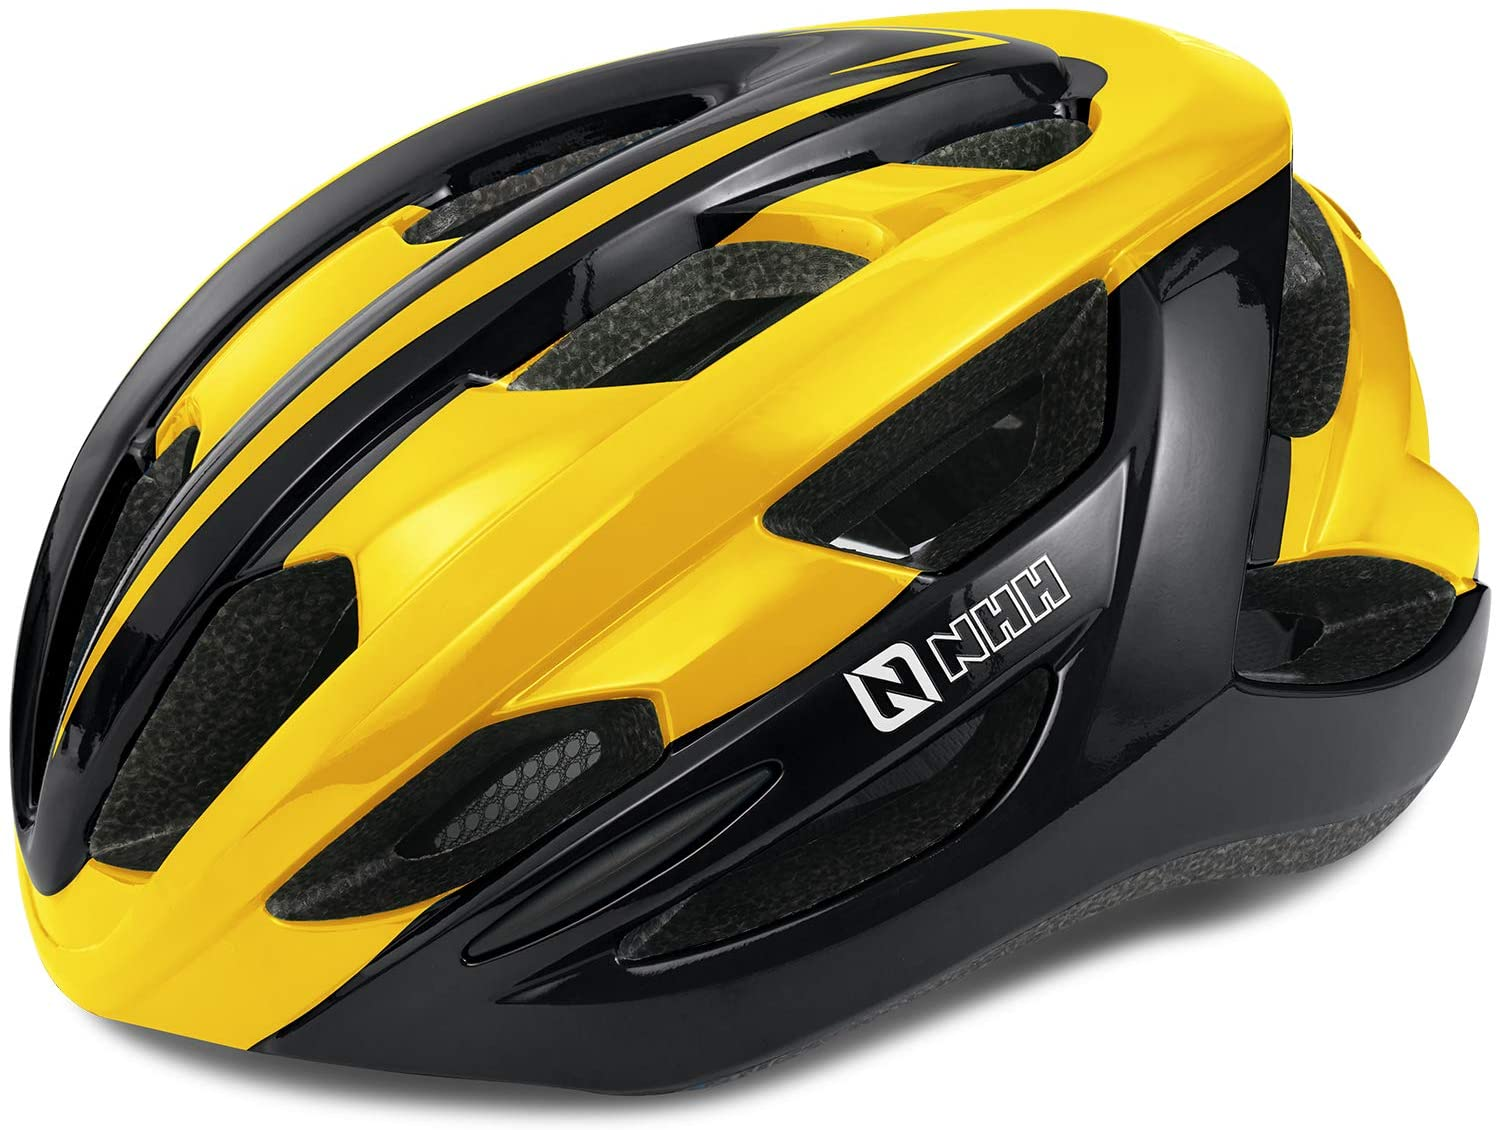 NHH Save OFFer money Adult Bike Helmet - Cycling CPSC-Compliant Bicycle Li